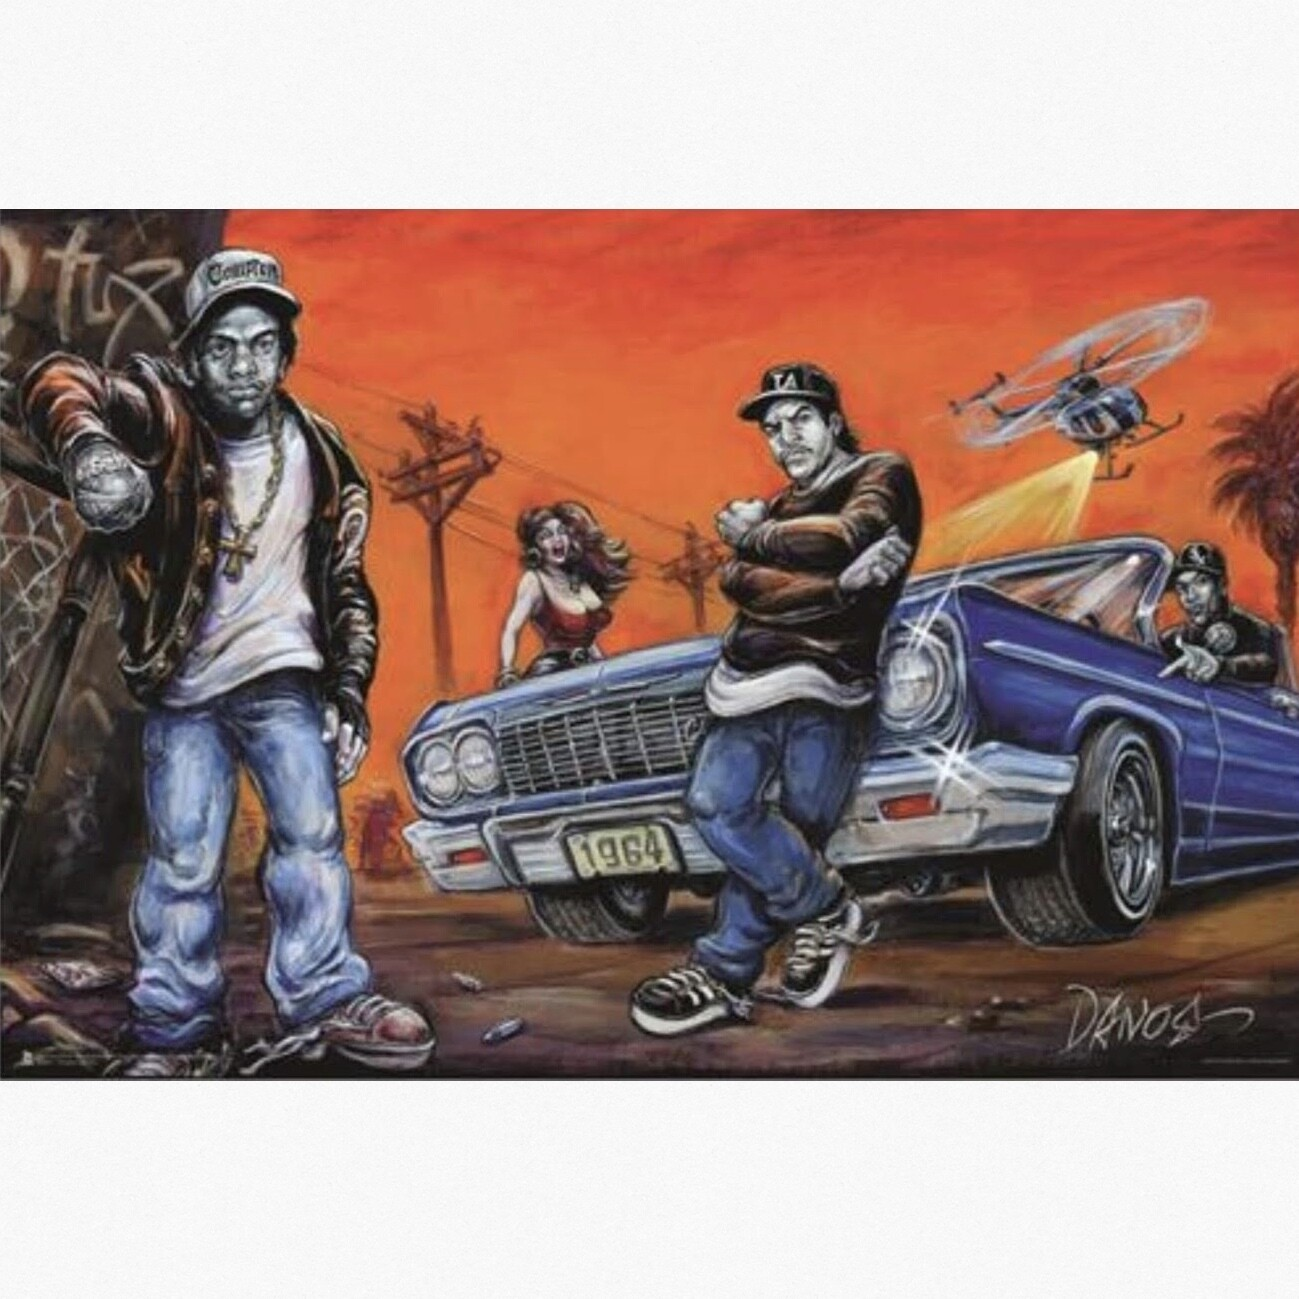 COMPTON ART BY DANO POSTER